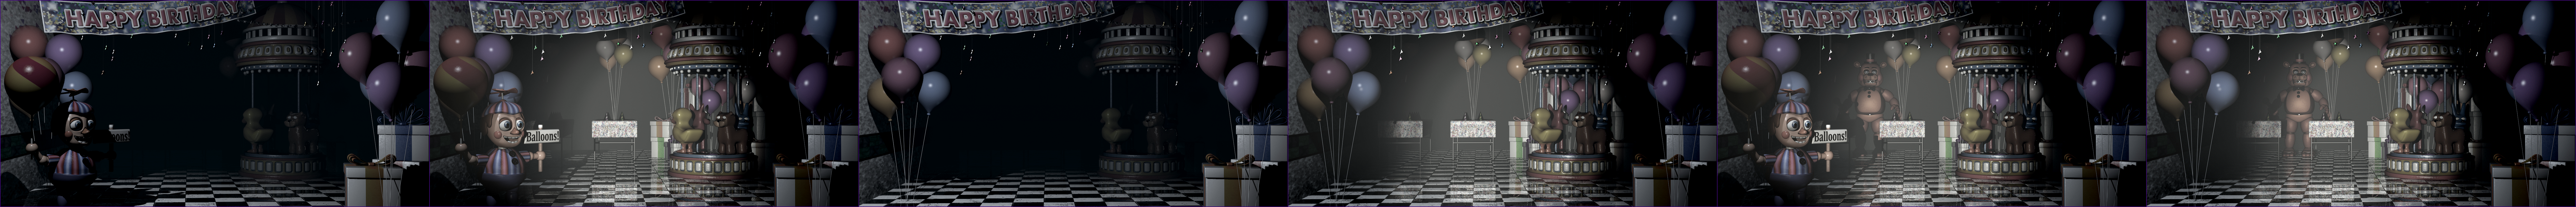 Five Nights at Freddy's 2 - Game Area